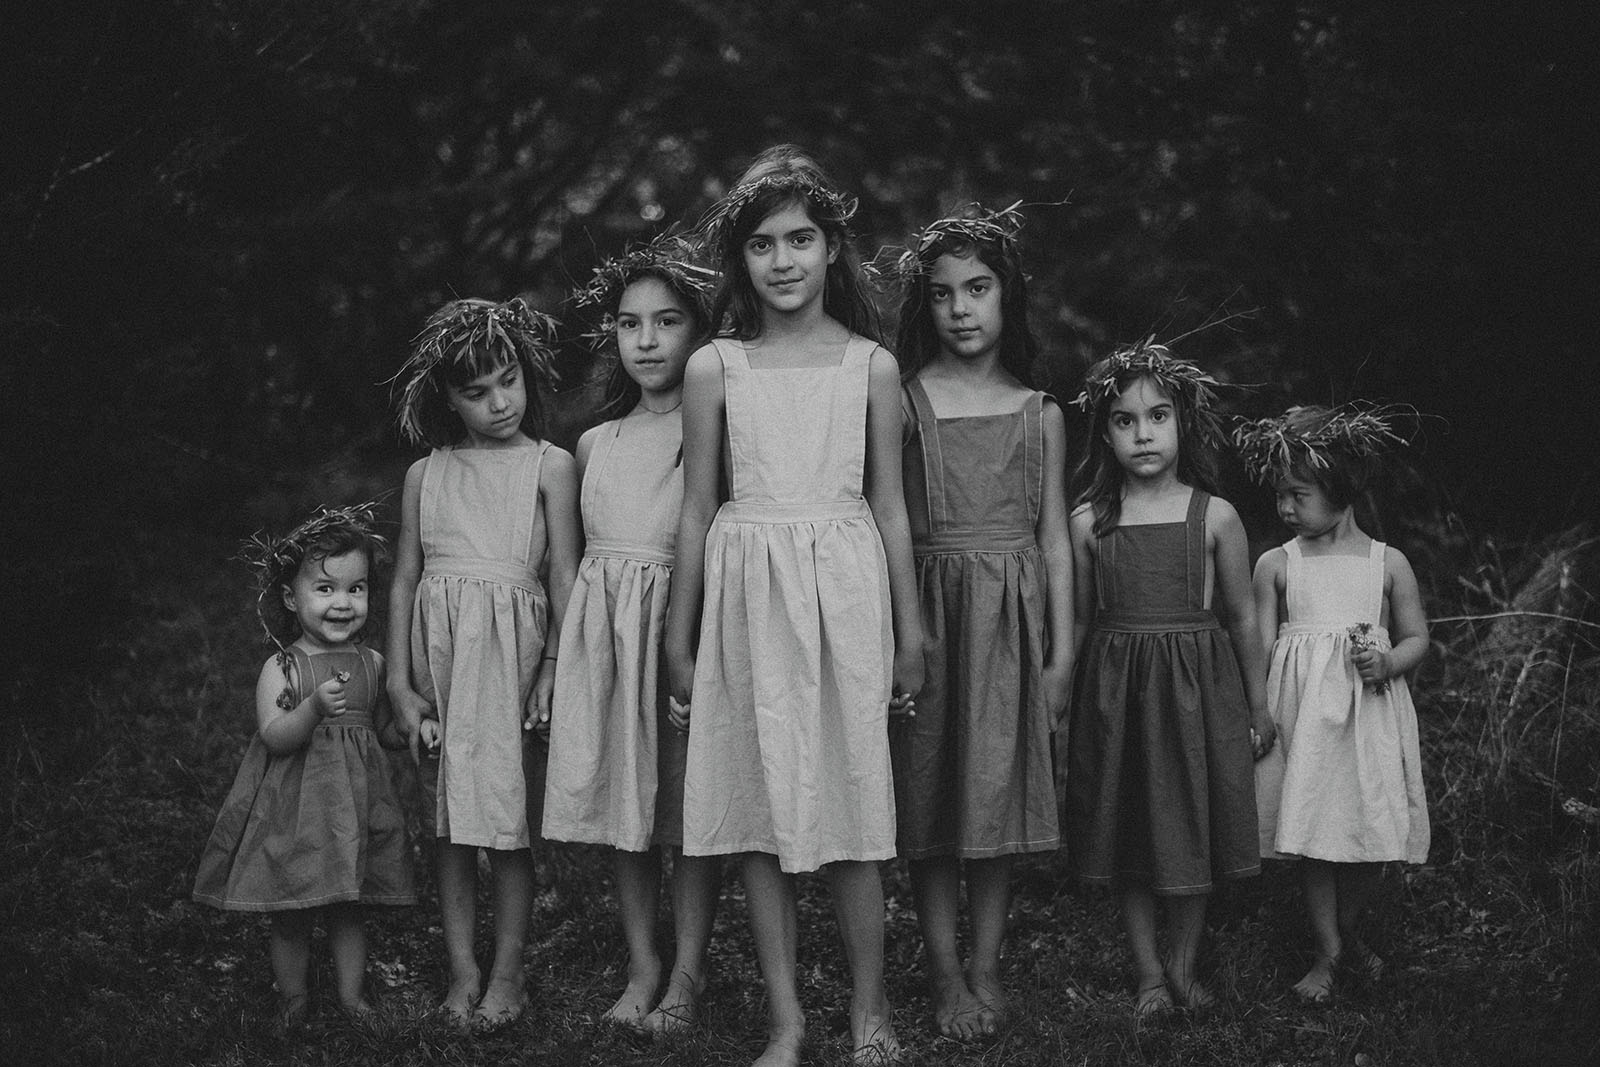 Katie Metka - Prolific women photographers changing the industry